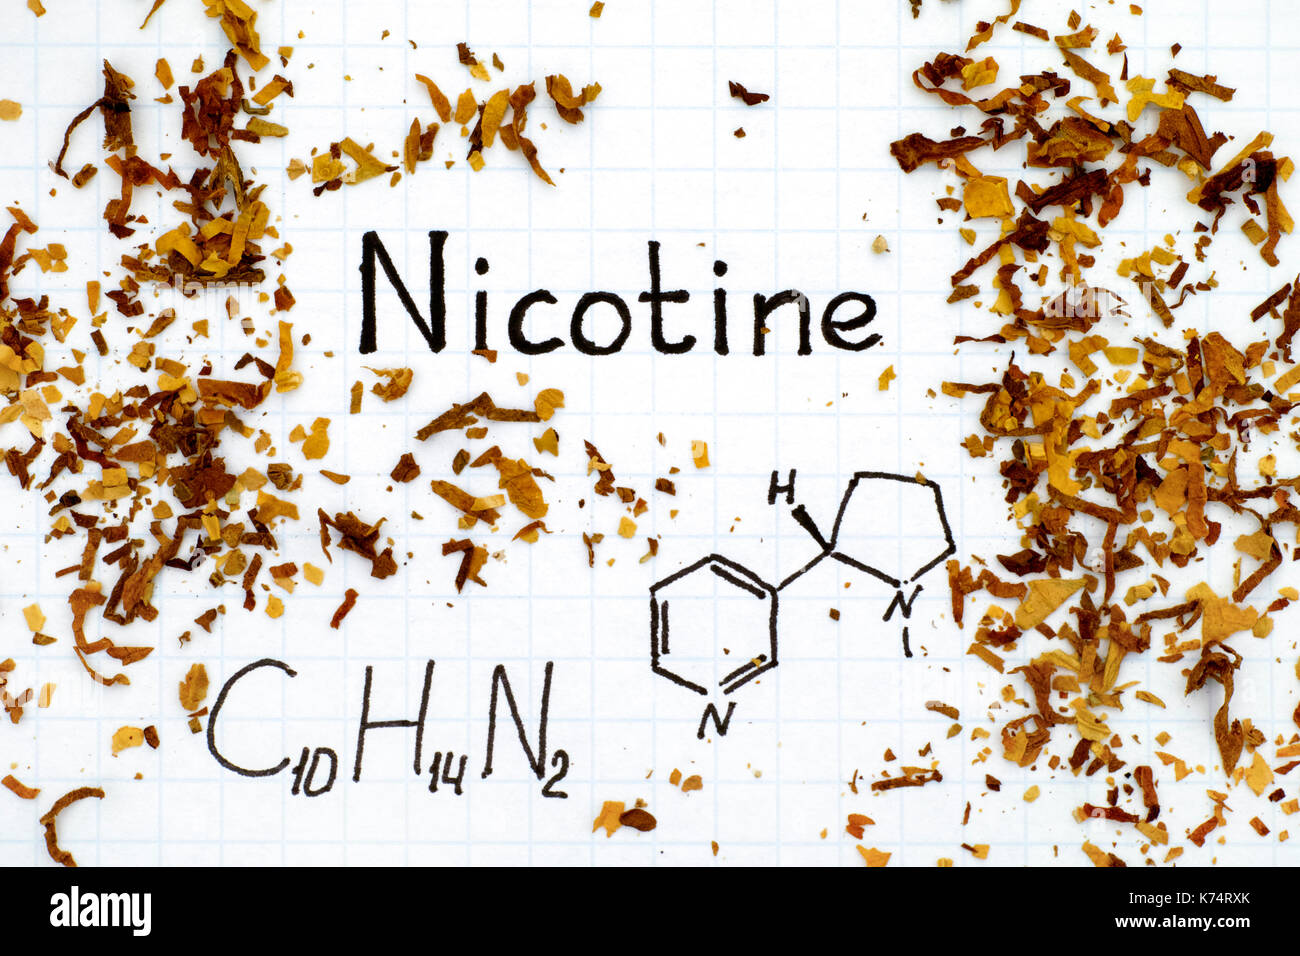 Chemical formula of Nicotine with spilled tobacco. Close-up. - Stock Image